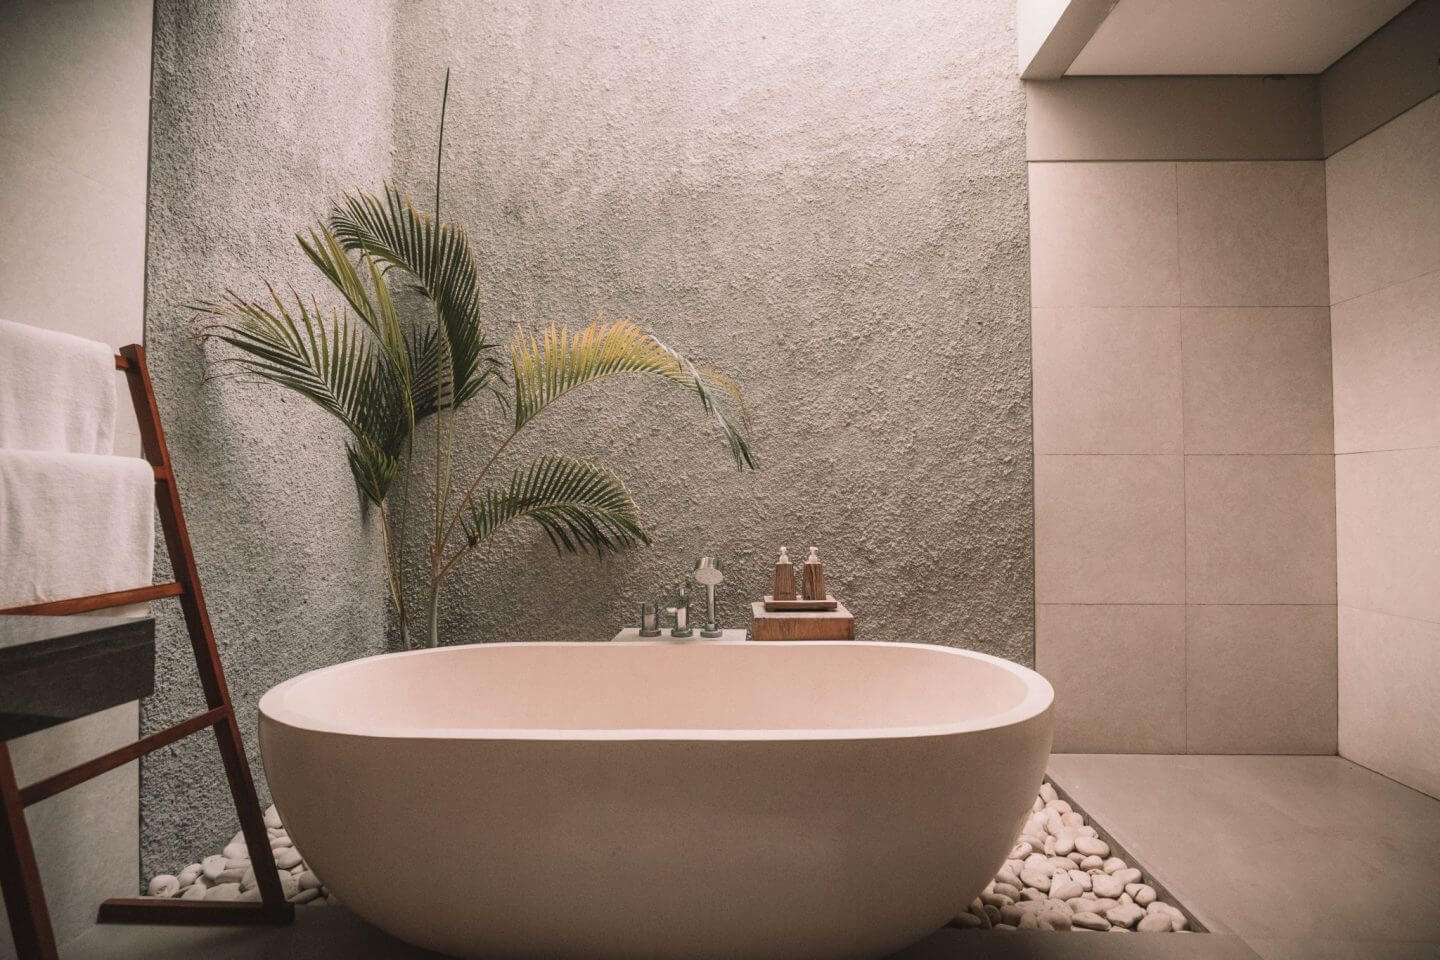 Tips for a warm and toasty bathroom